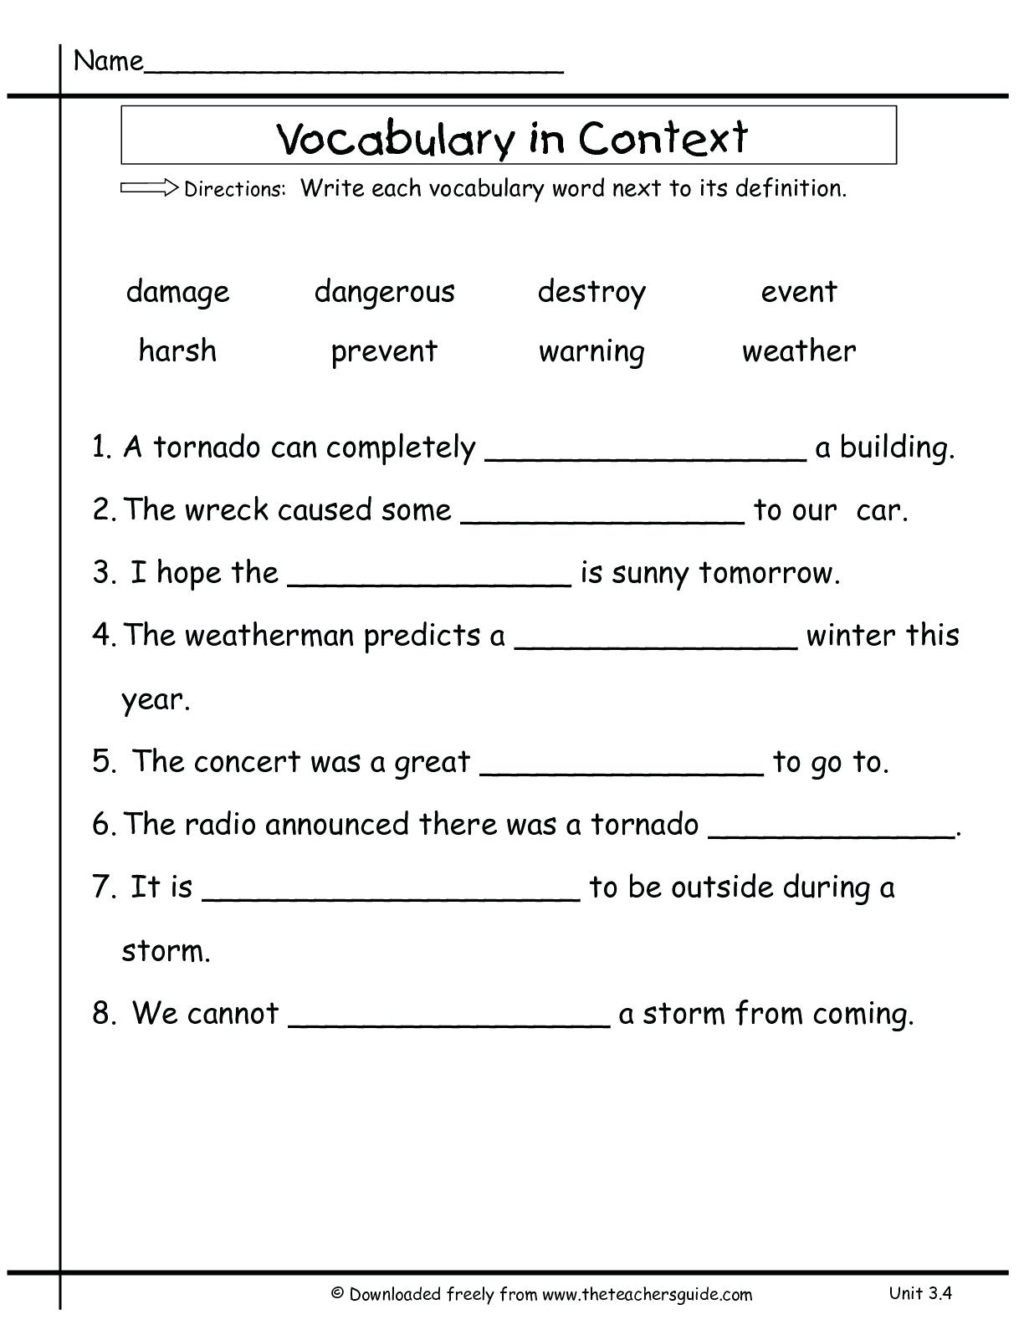 3rd grade vocabulary worksheets for educations 3rd grade 3